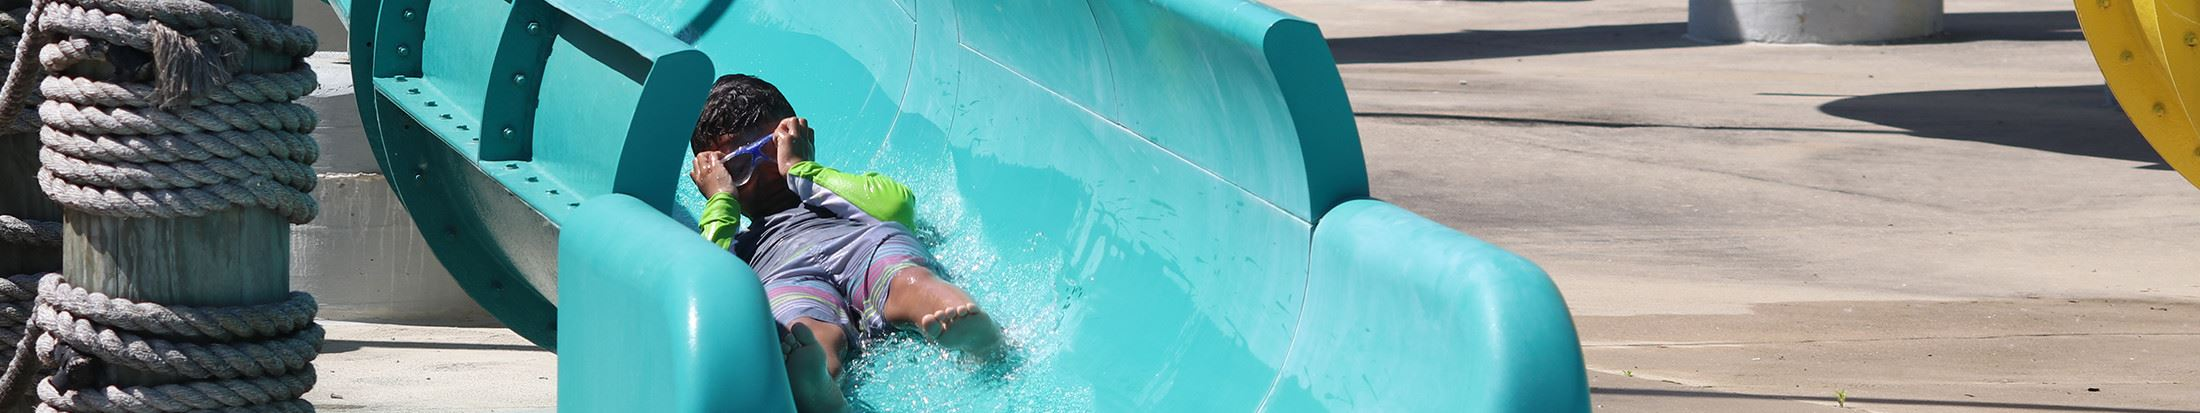 Child enjoying water slide at Splash Park